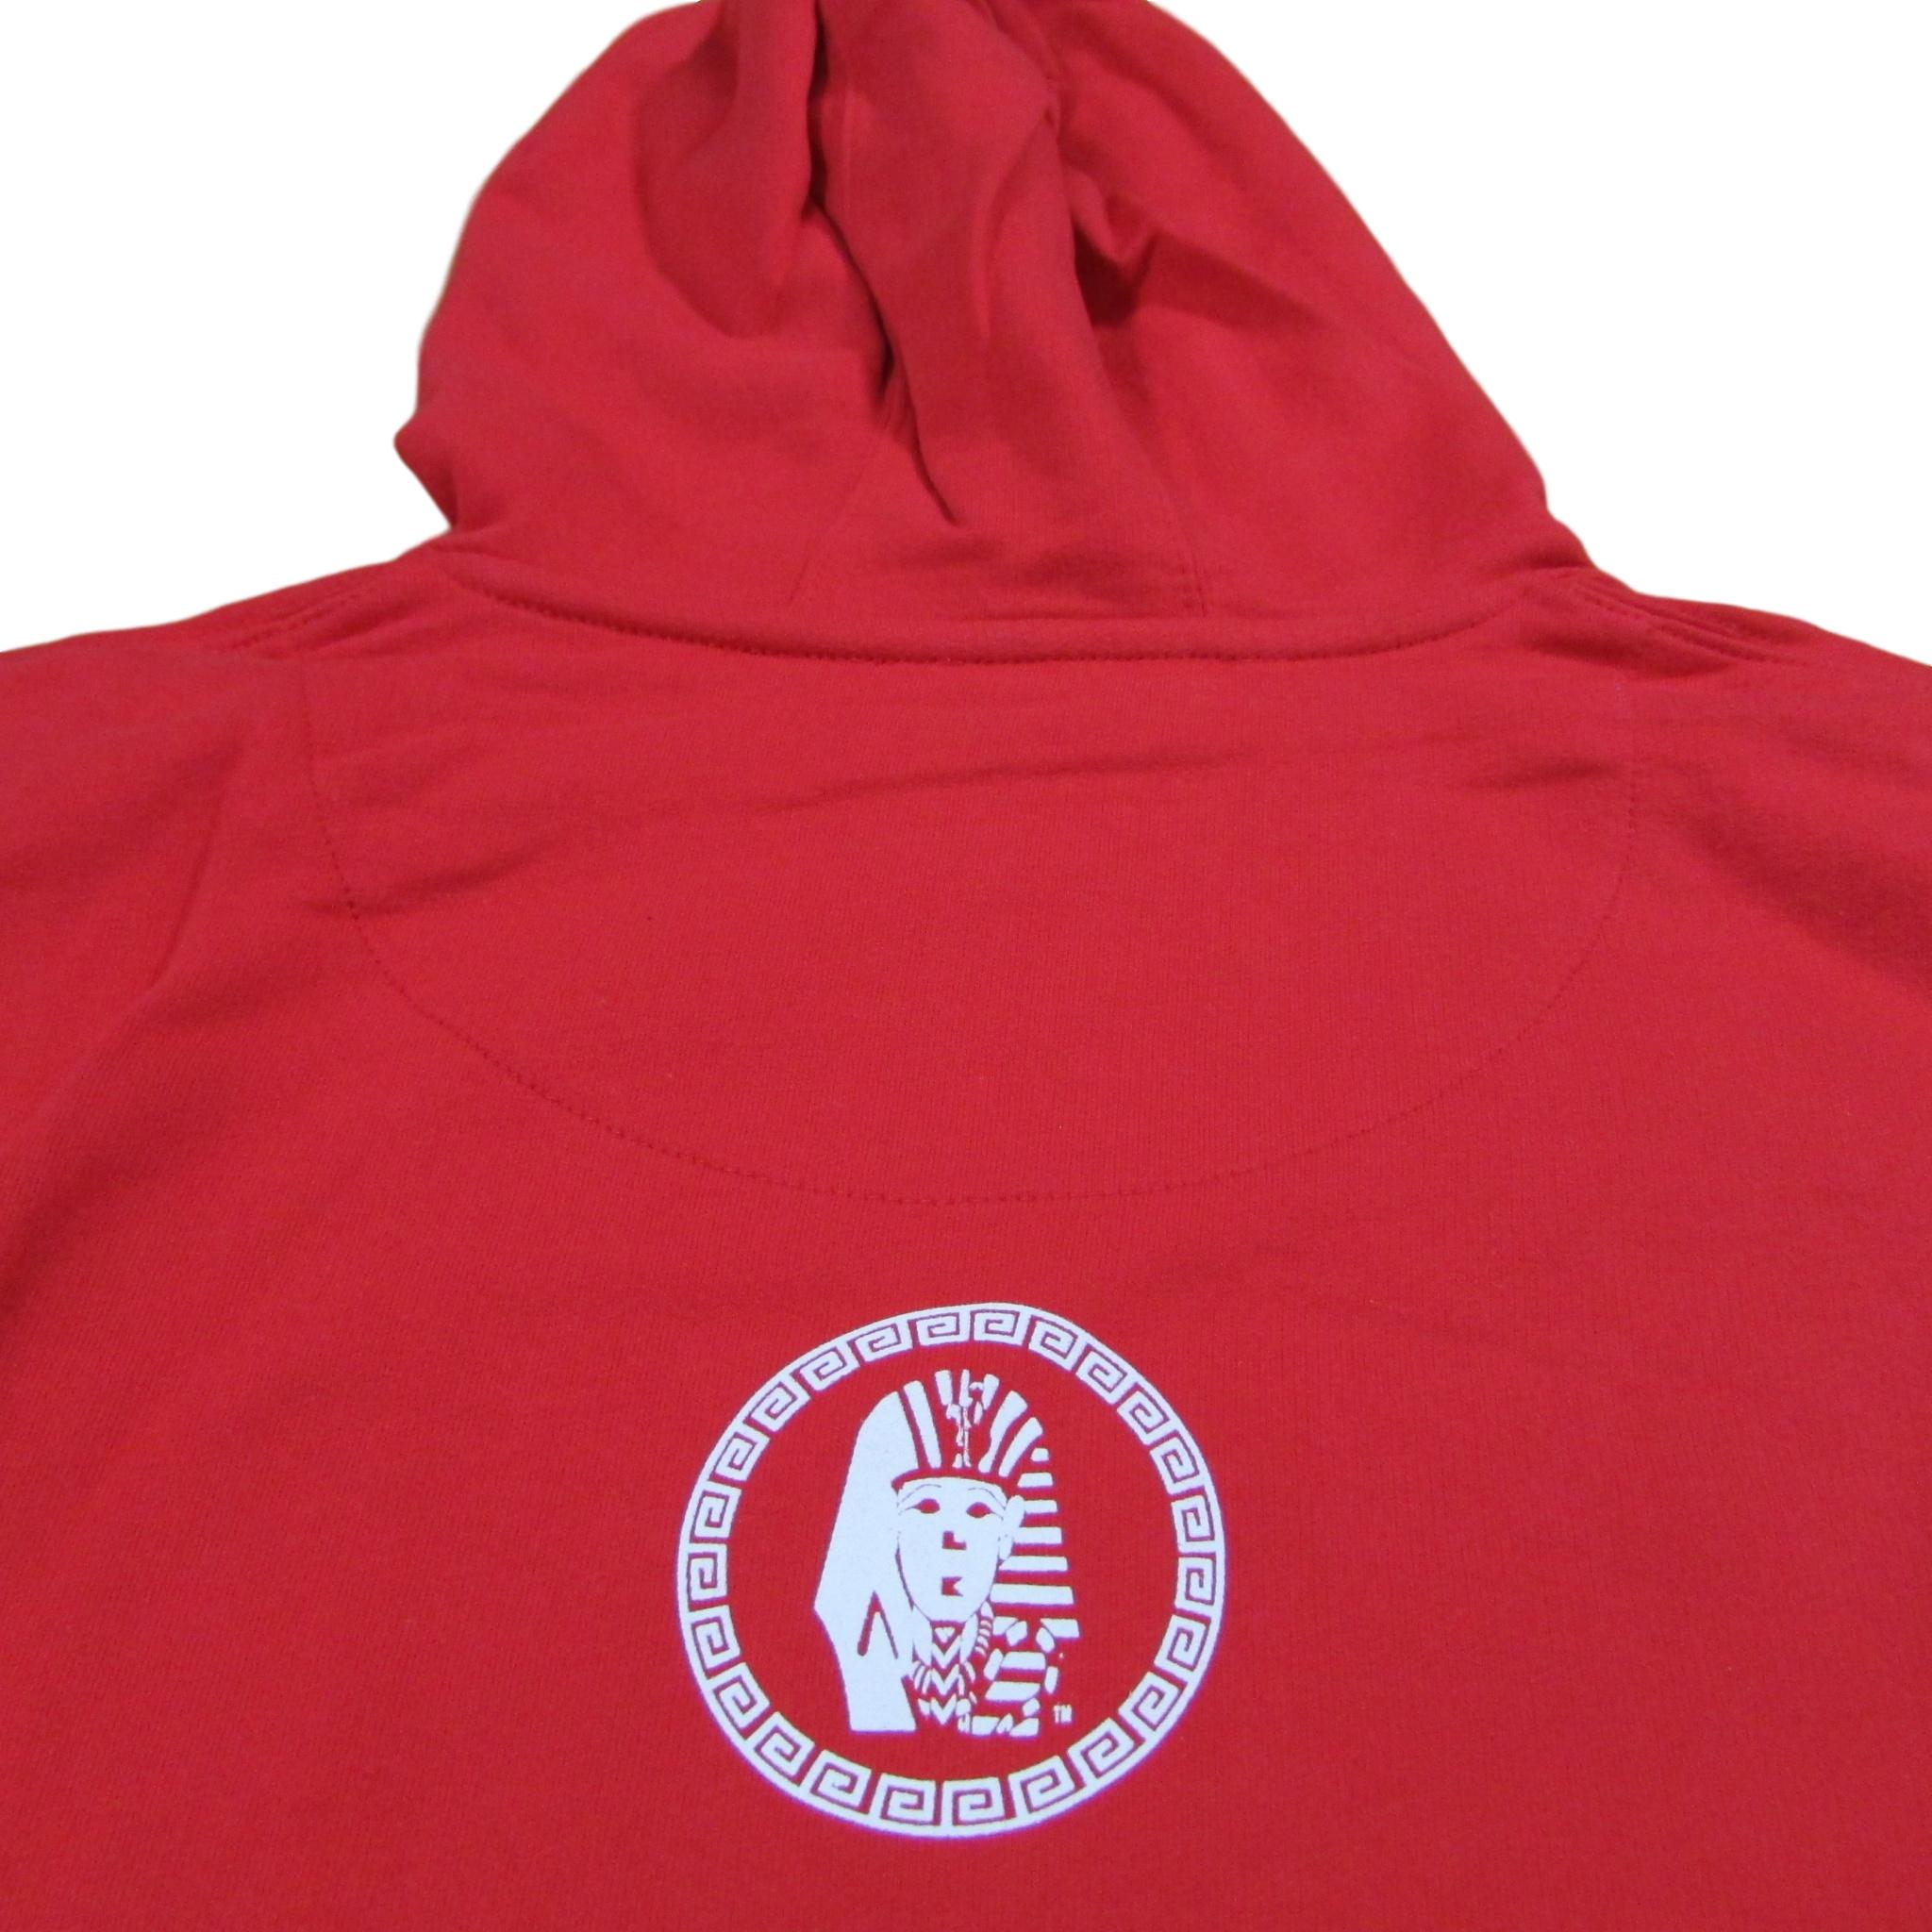 Last Kings X Men Logo Red Hoodie Sweater